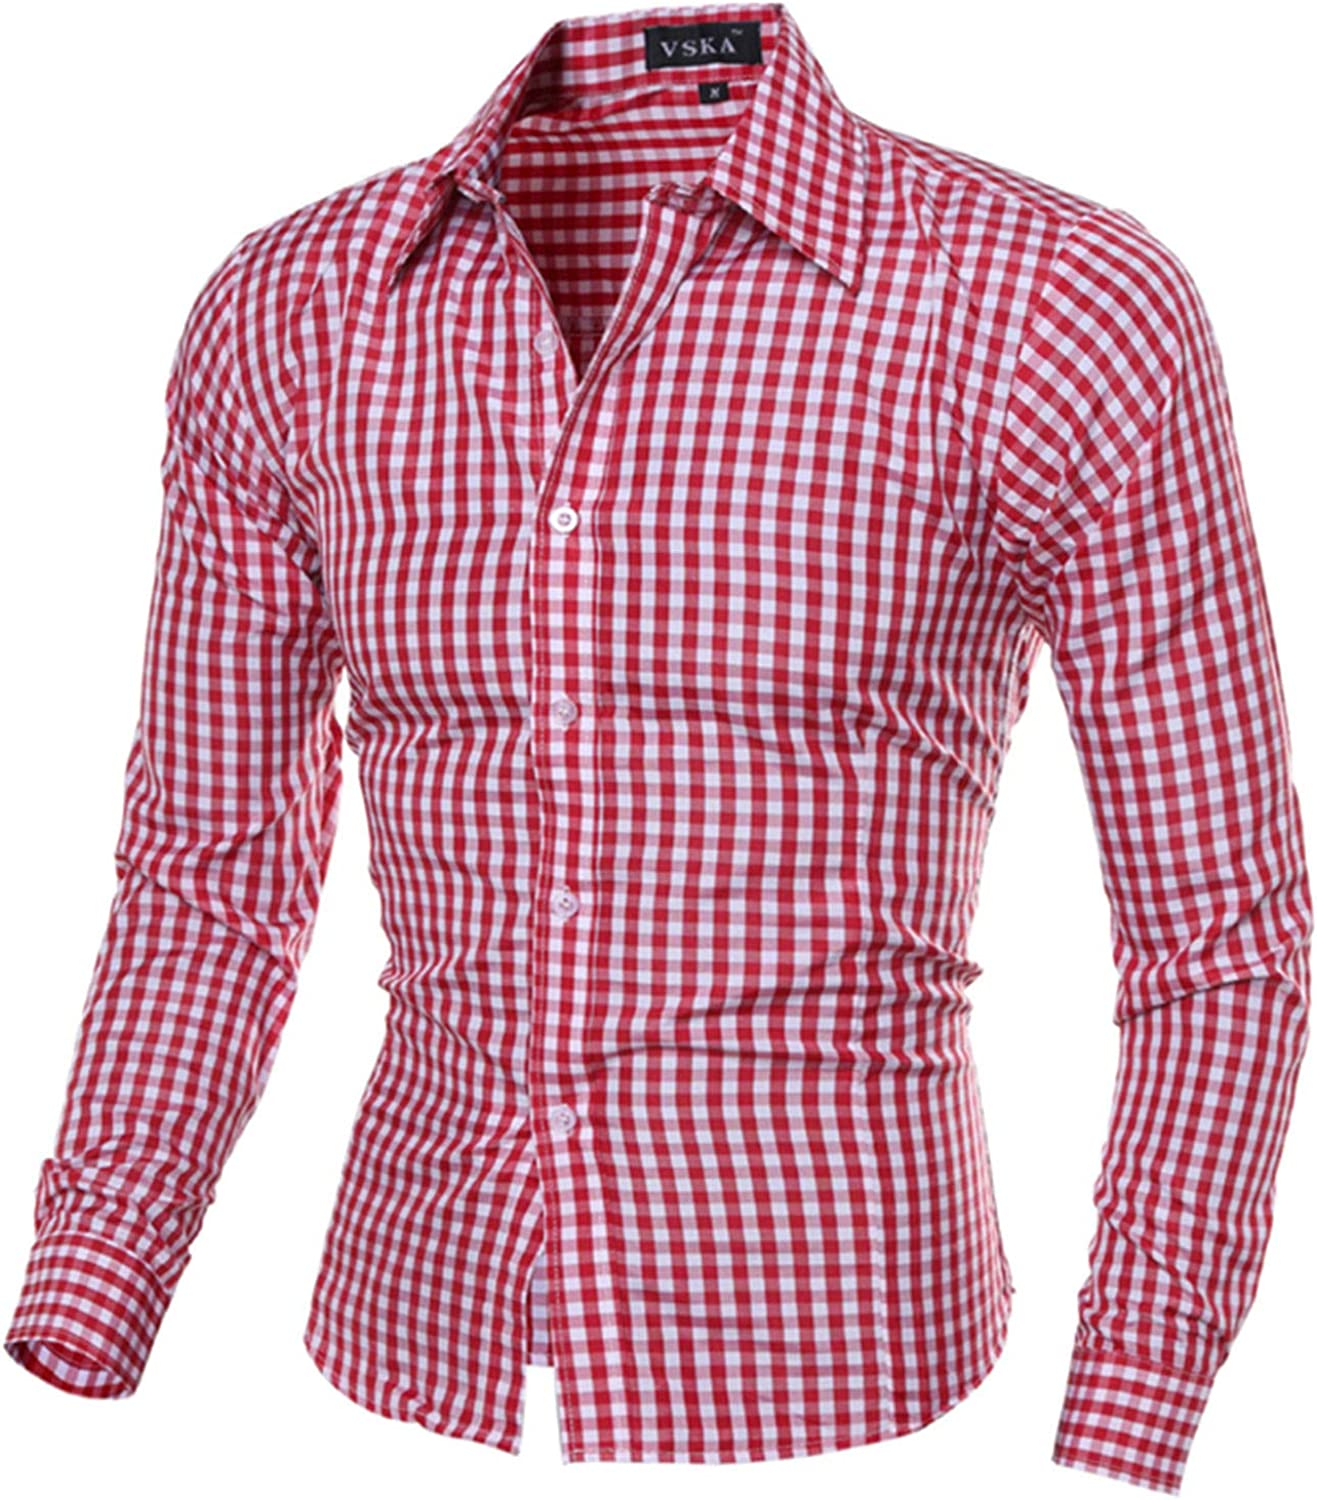 LEIYAN Mens Slim Fit Button Down Shirts Summer Long Sleeve for Business Work Stretch Casual Bottoming Shirt Tops